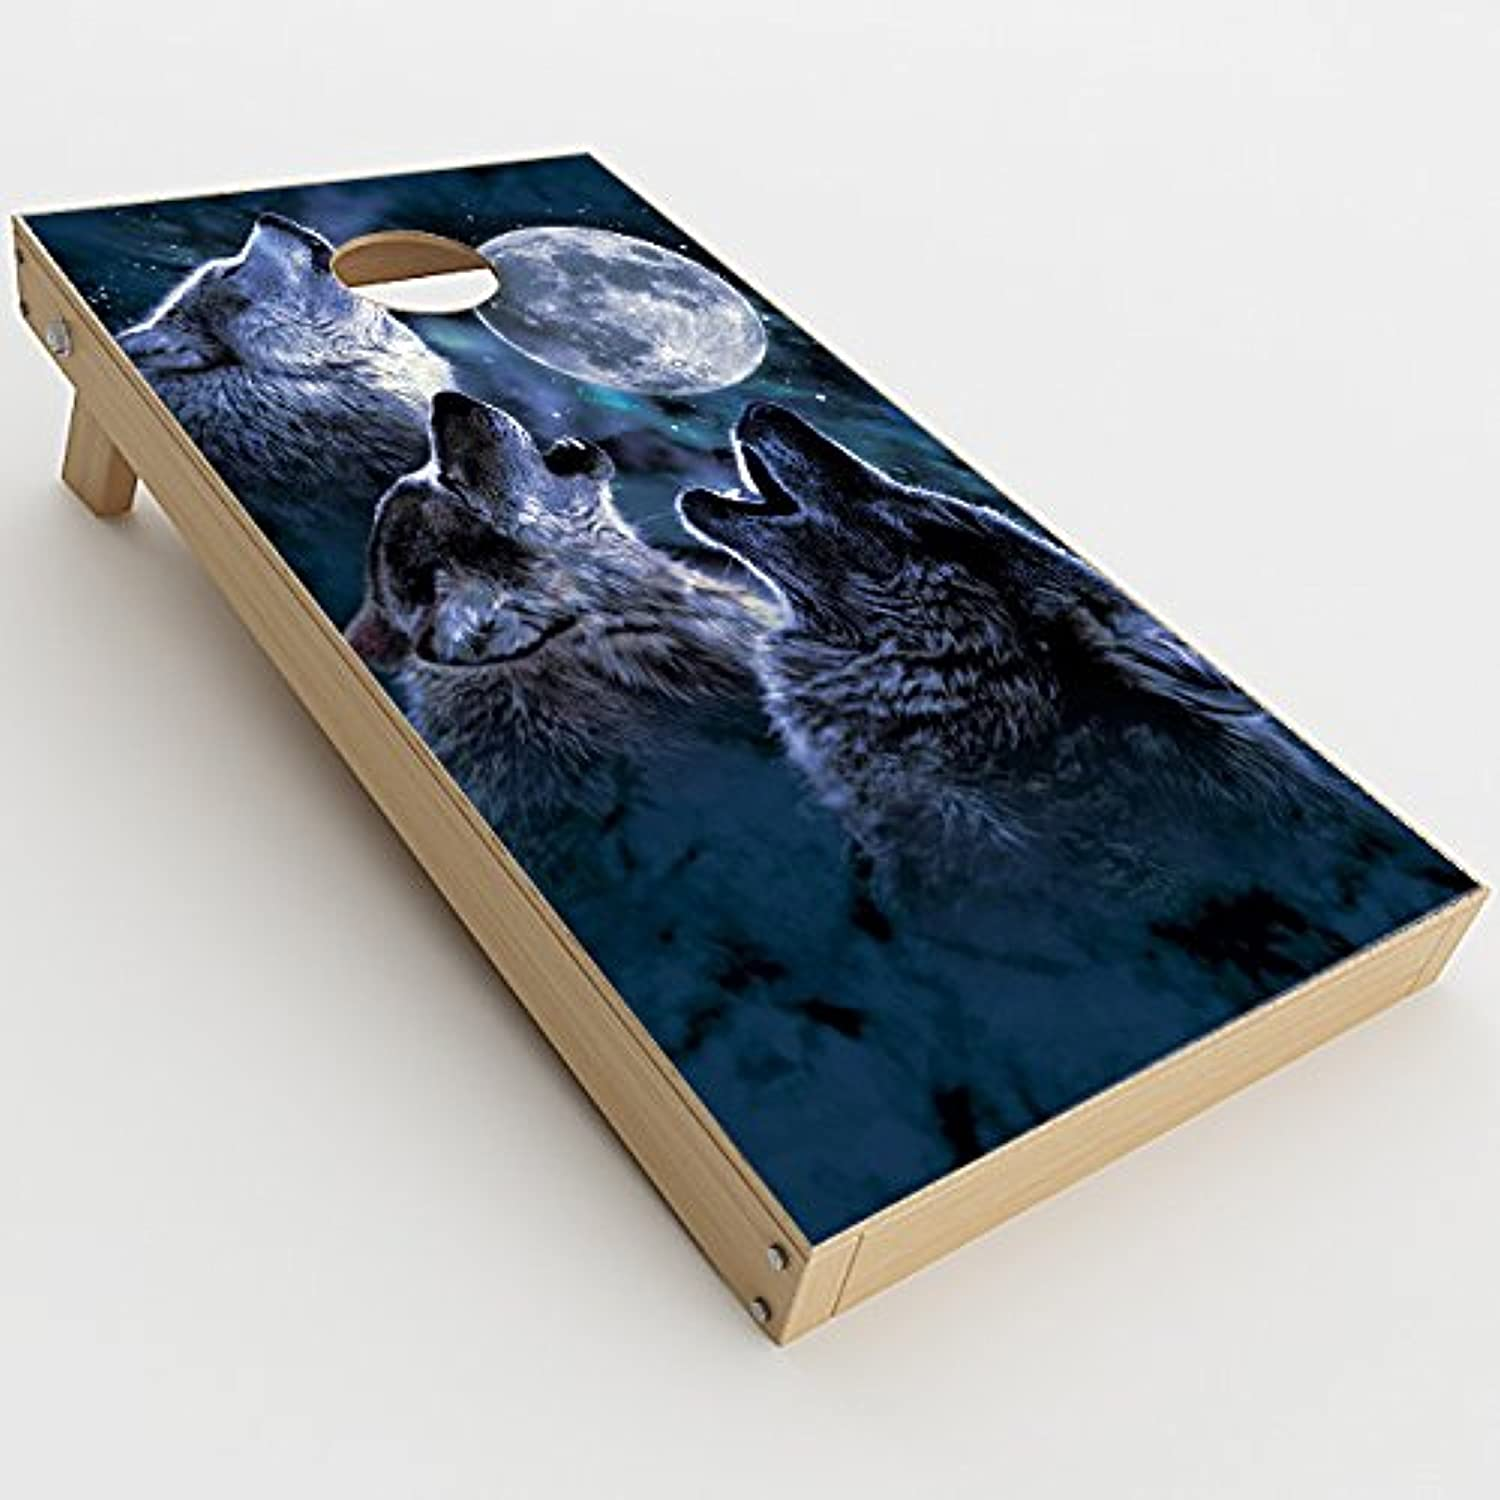 // Wolf howling at Moon 2xpcs. Skin Decals for Cornhole Game Board